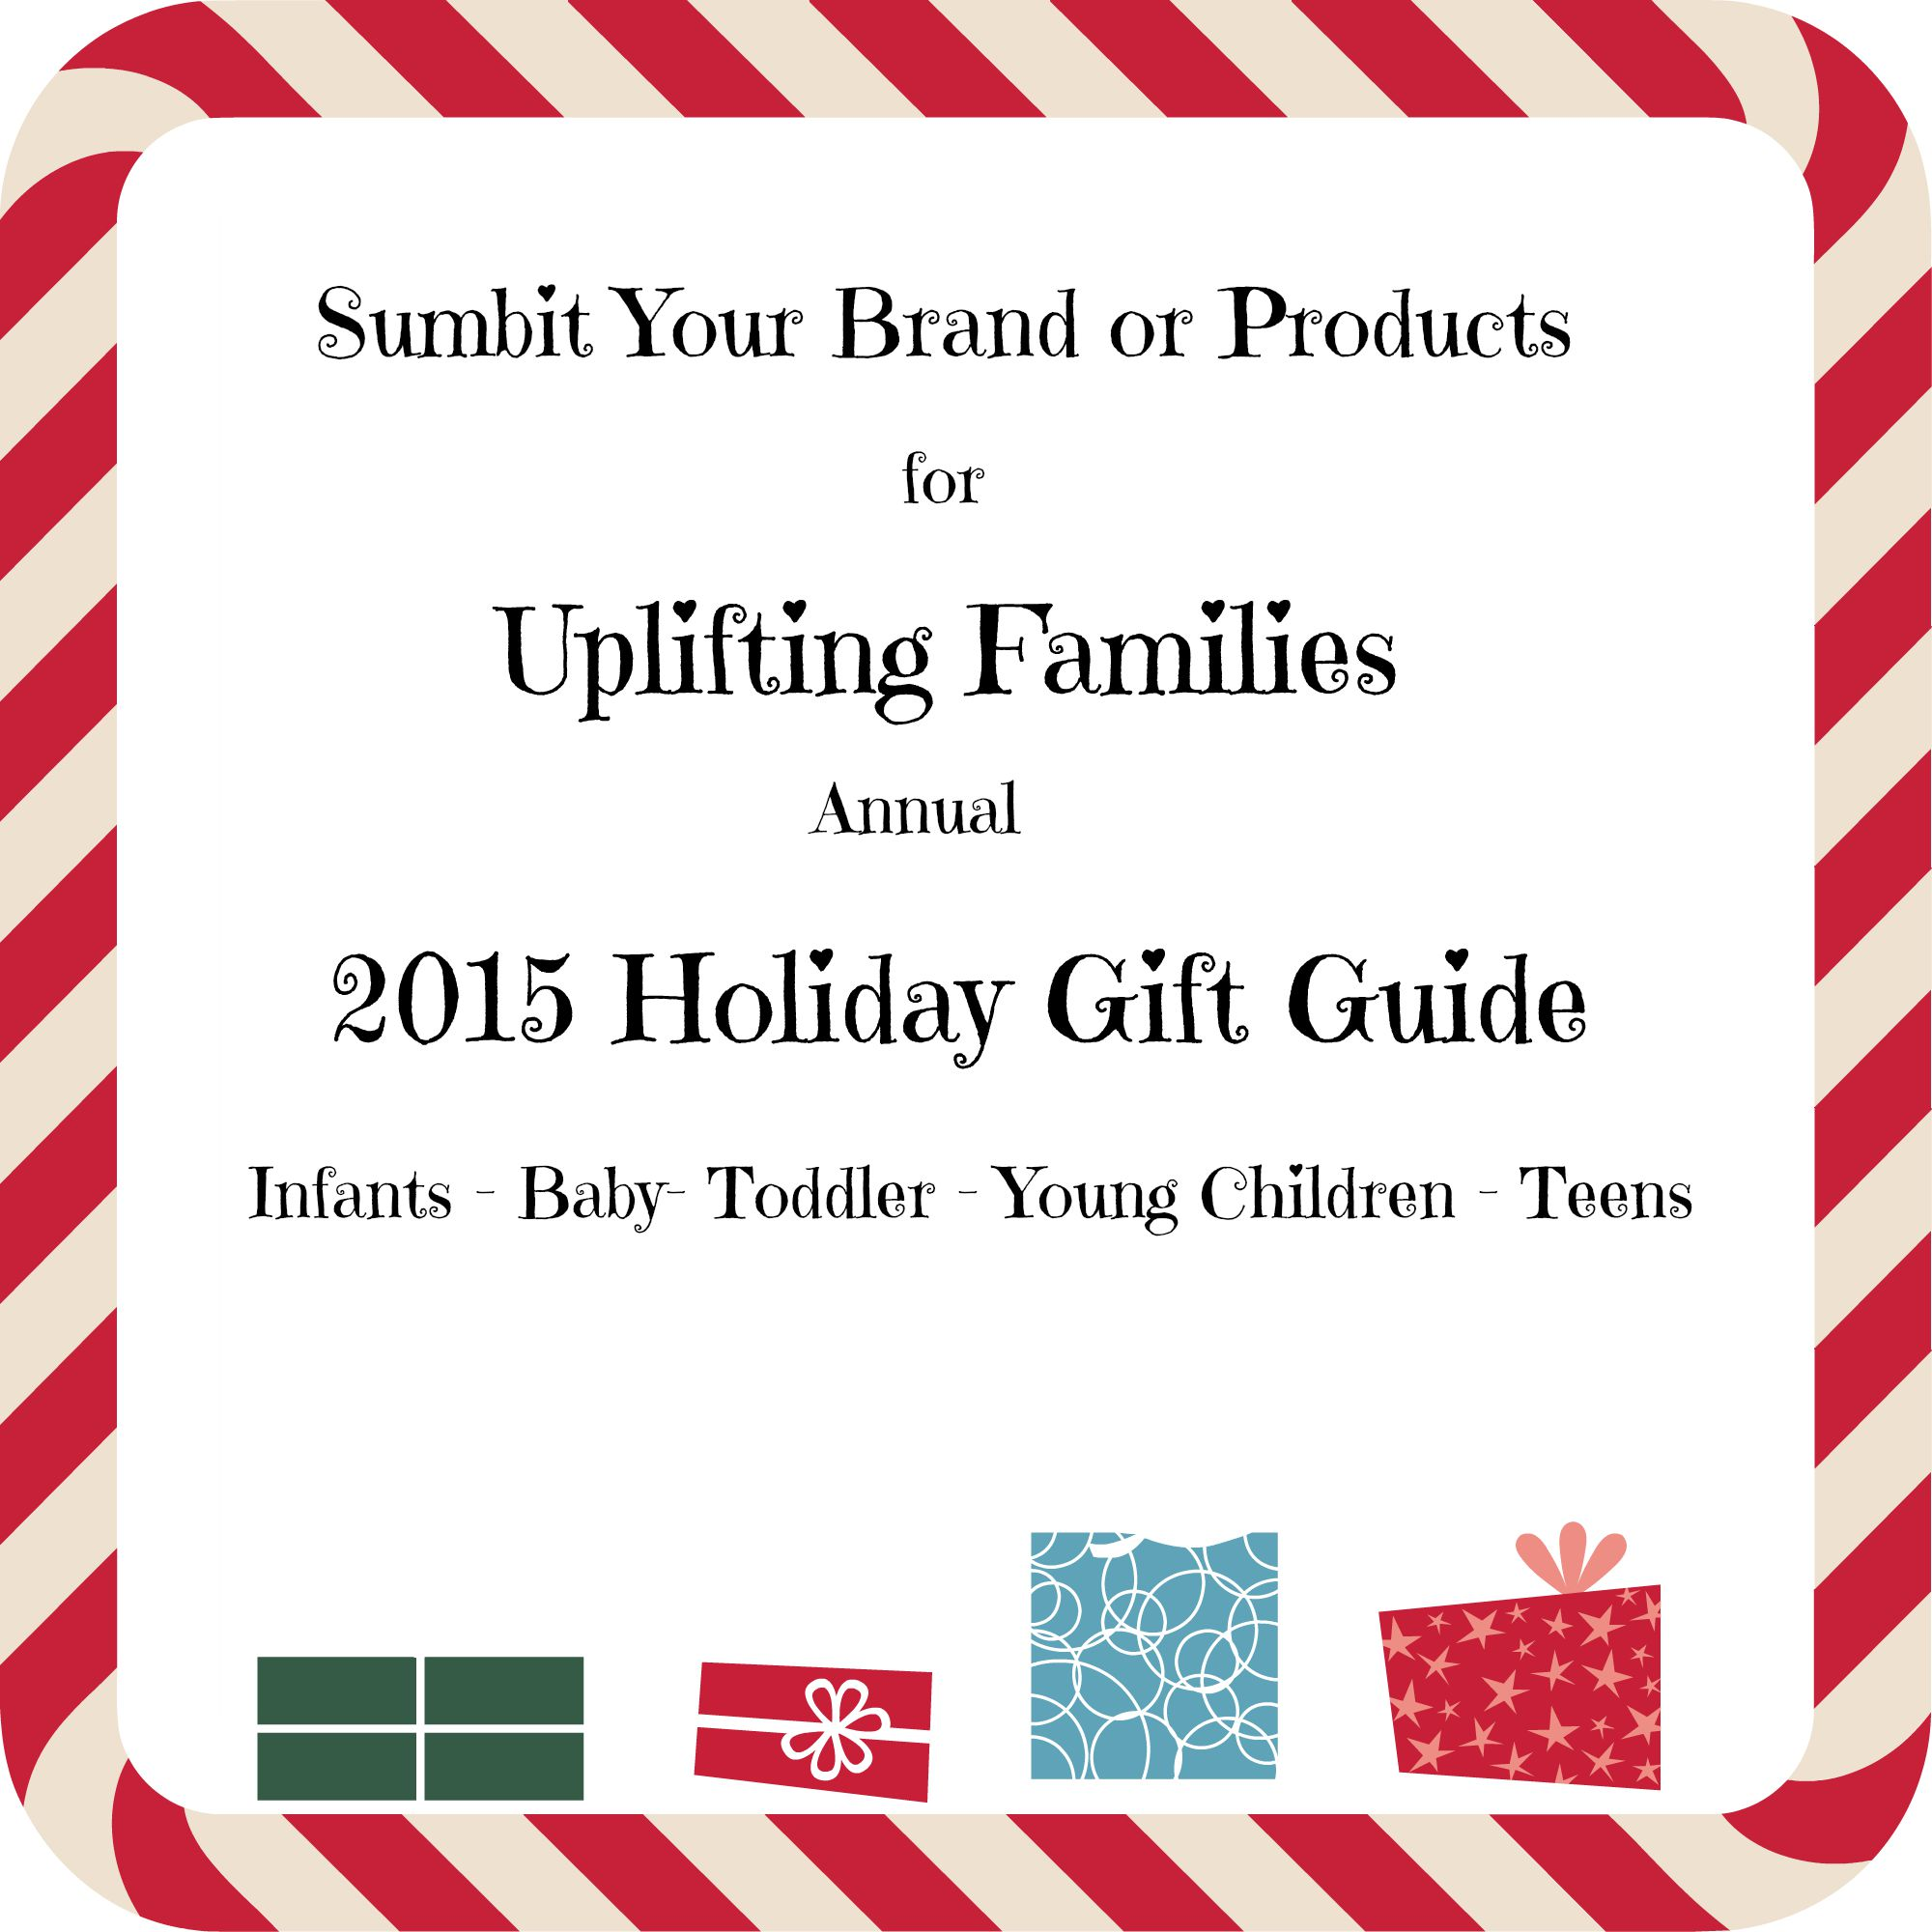 ifting Families Holiday Gift Guide 2015